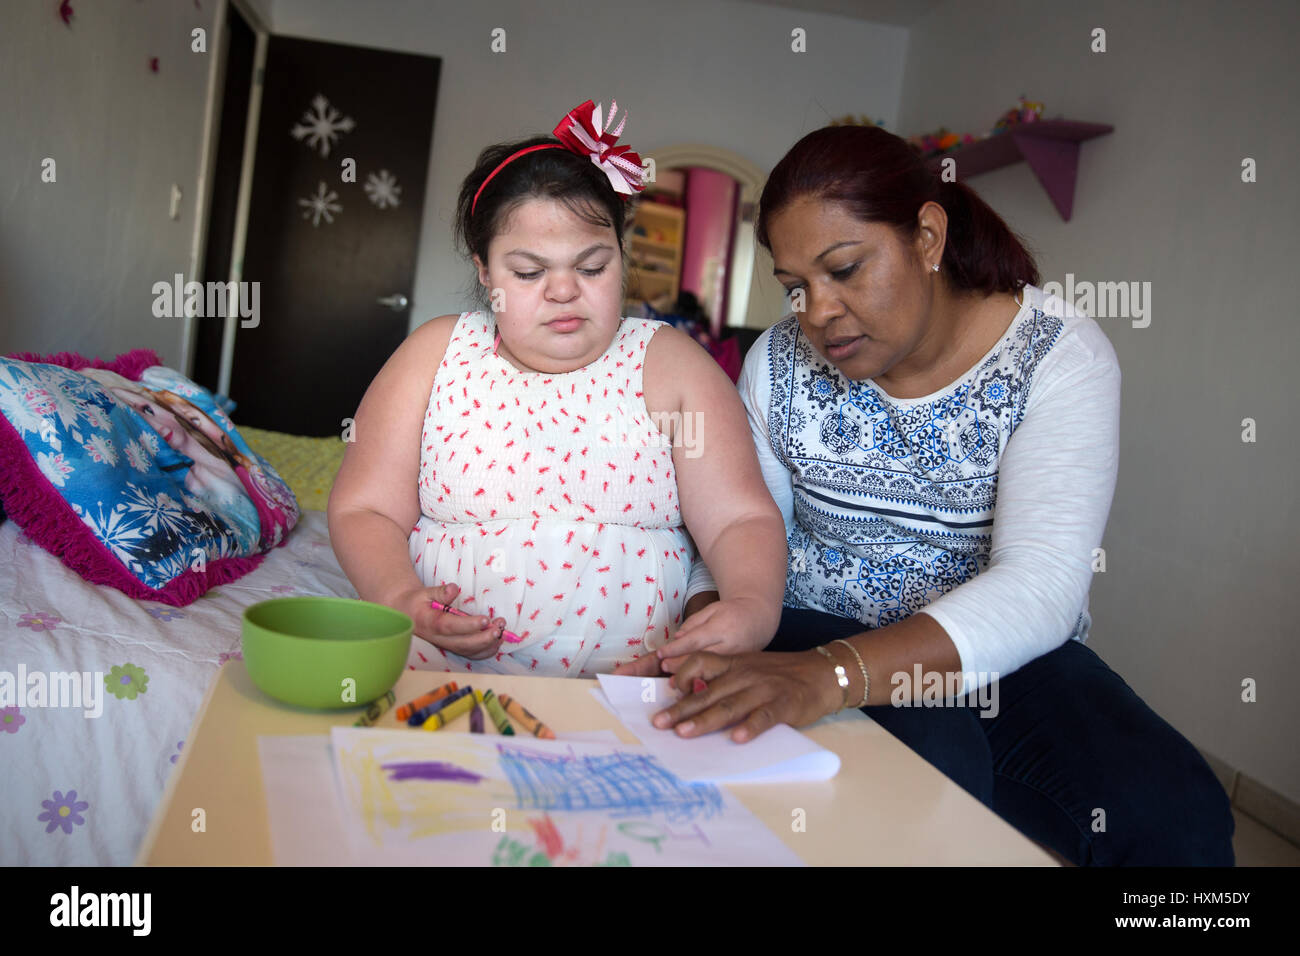 Ana Ximena Navarro (L) is pictured drawing with her aunt Gabriela Rios Ballesteros (R), at her home in Guadalajara, - Stock Image